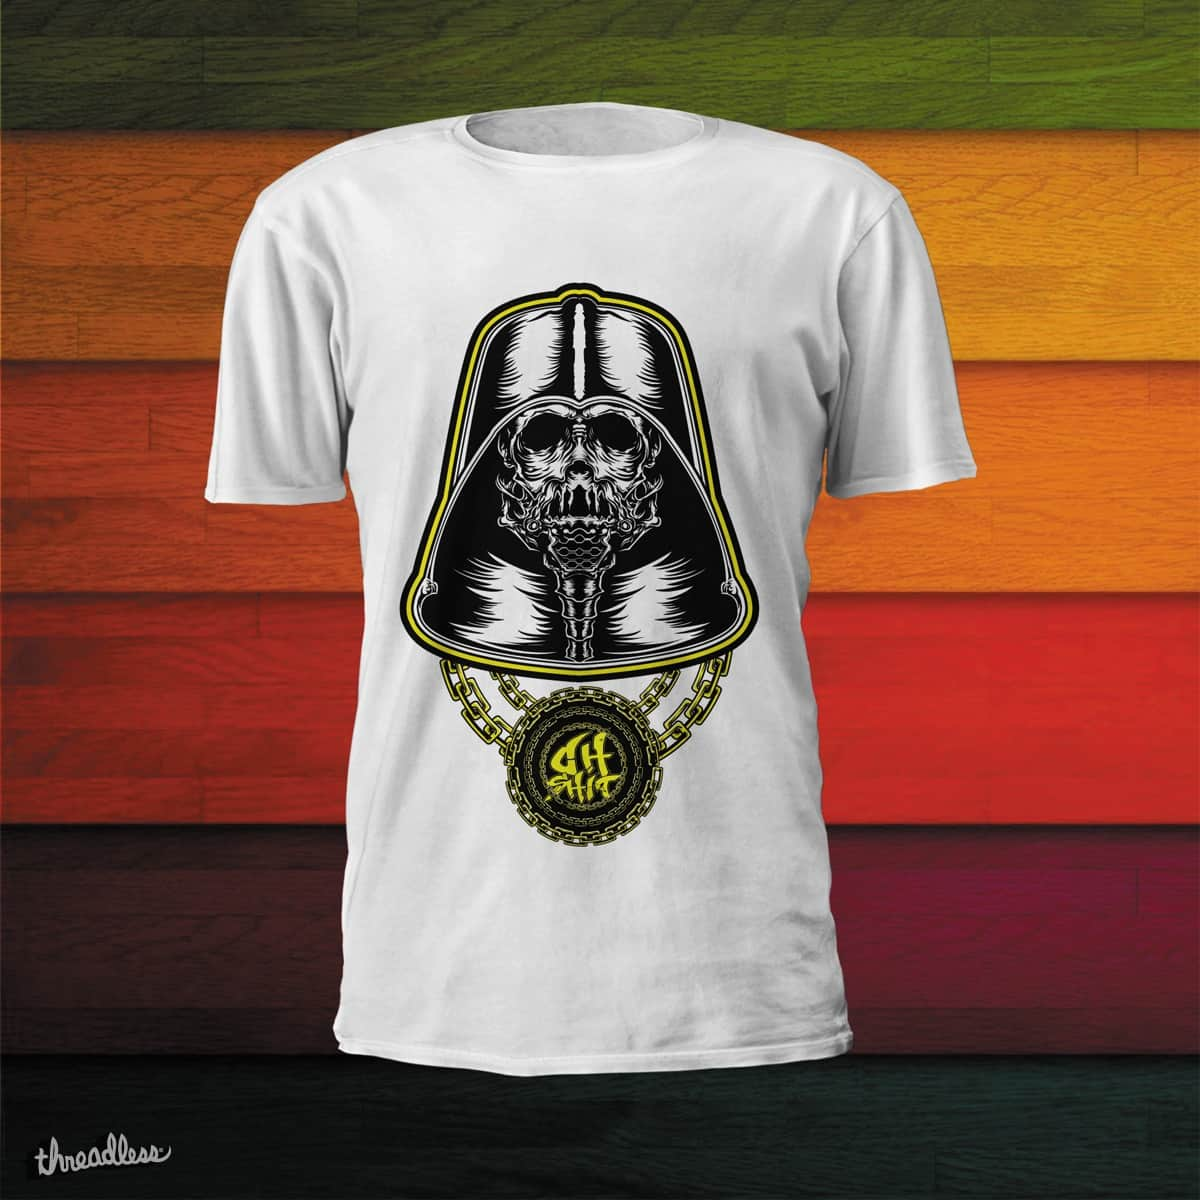 Star Wars by tusclothing on Threadless